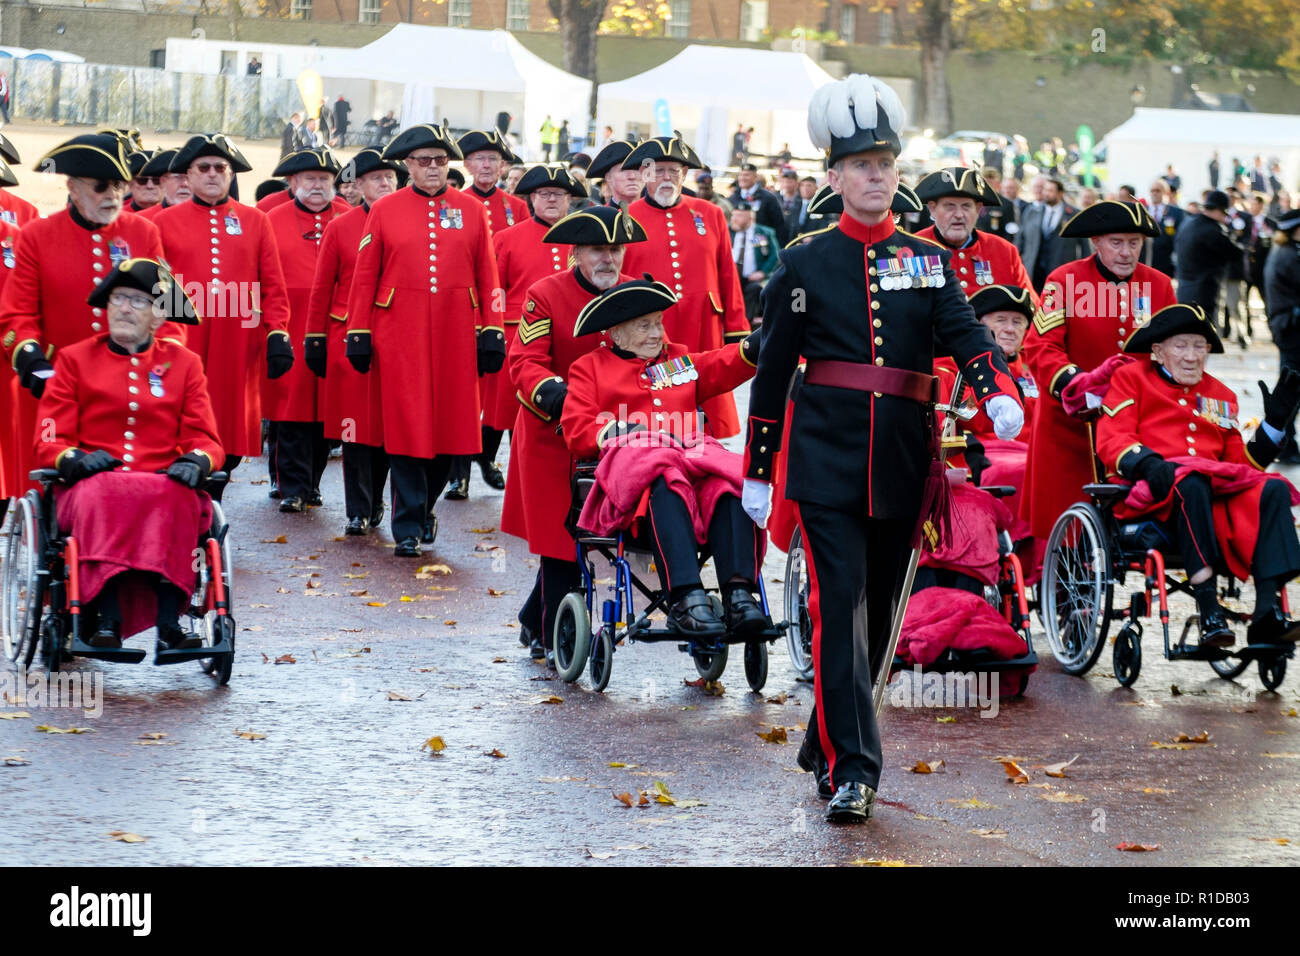 London, UK. 11th November 2018. Military veterans participate in Remembrance Day parade commemorating the 100th anniversary of the end of the First World War. Stock Photo